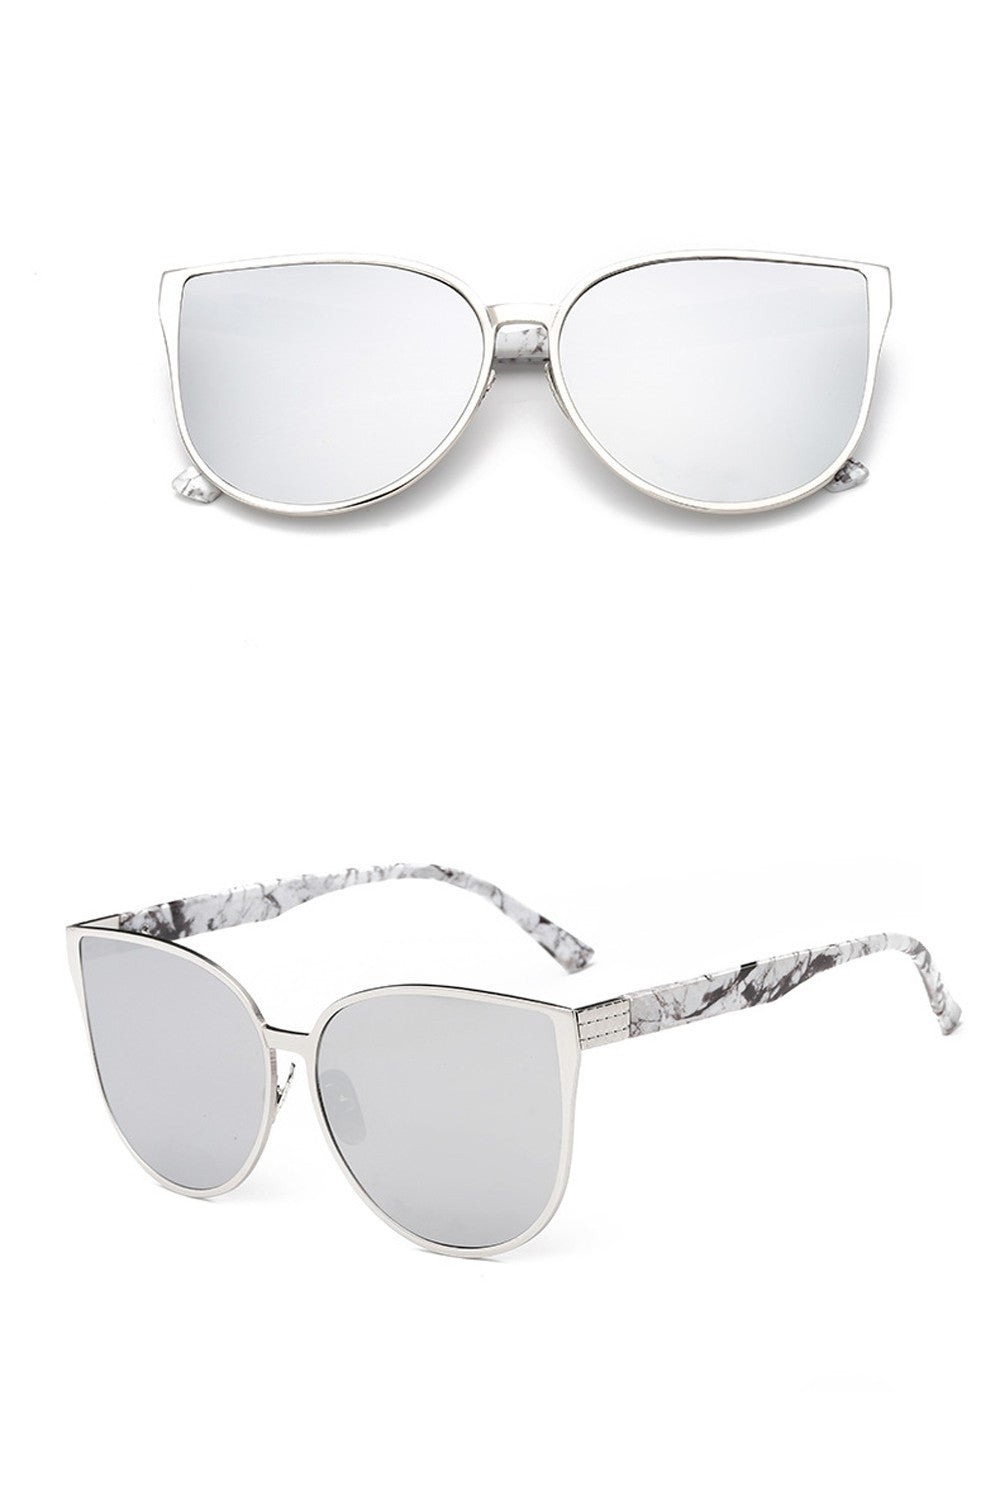 Buy Meguste Cat Eye Women's Sunglasses UV400 online by Fit Miami Style for $13.99